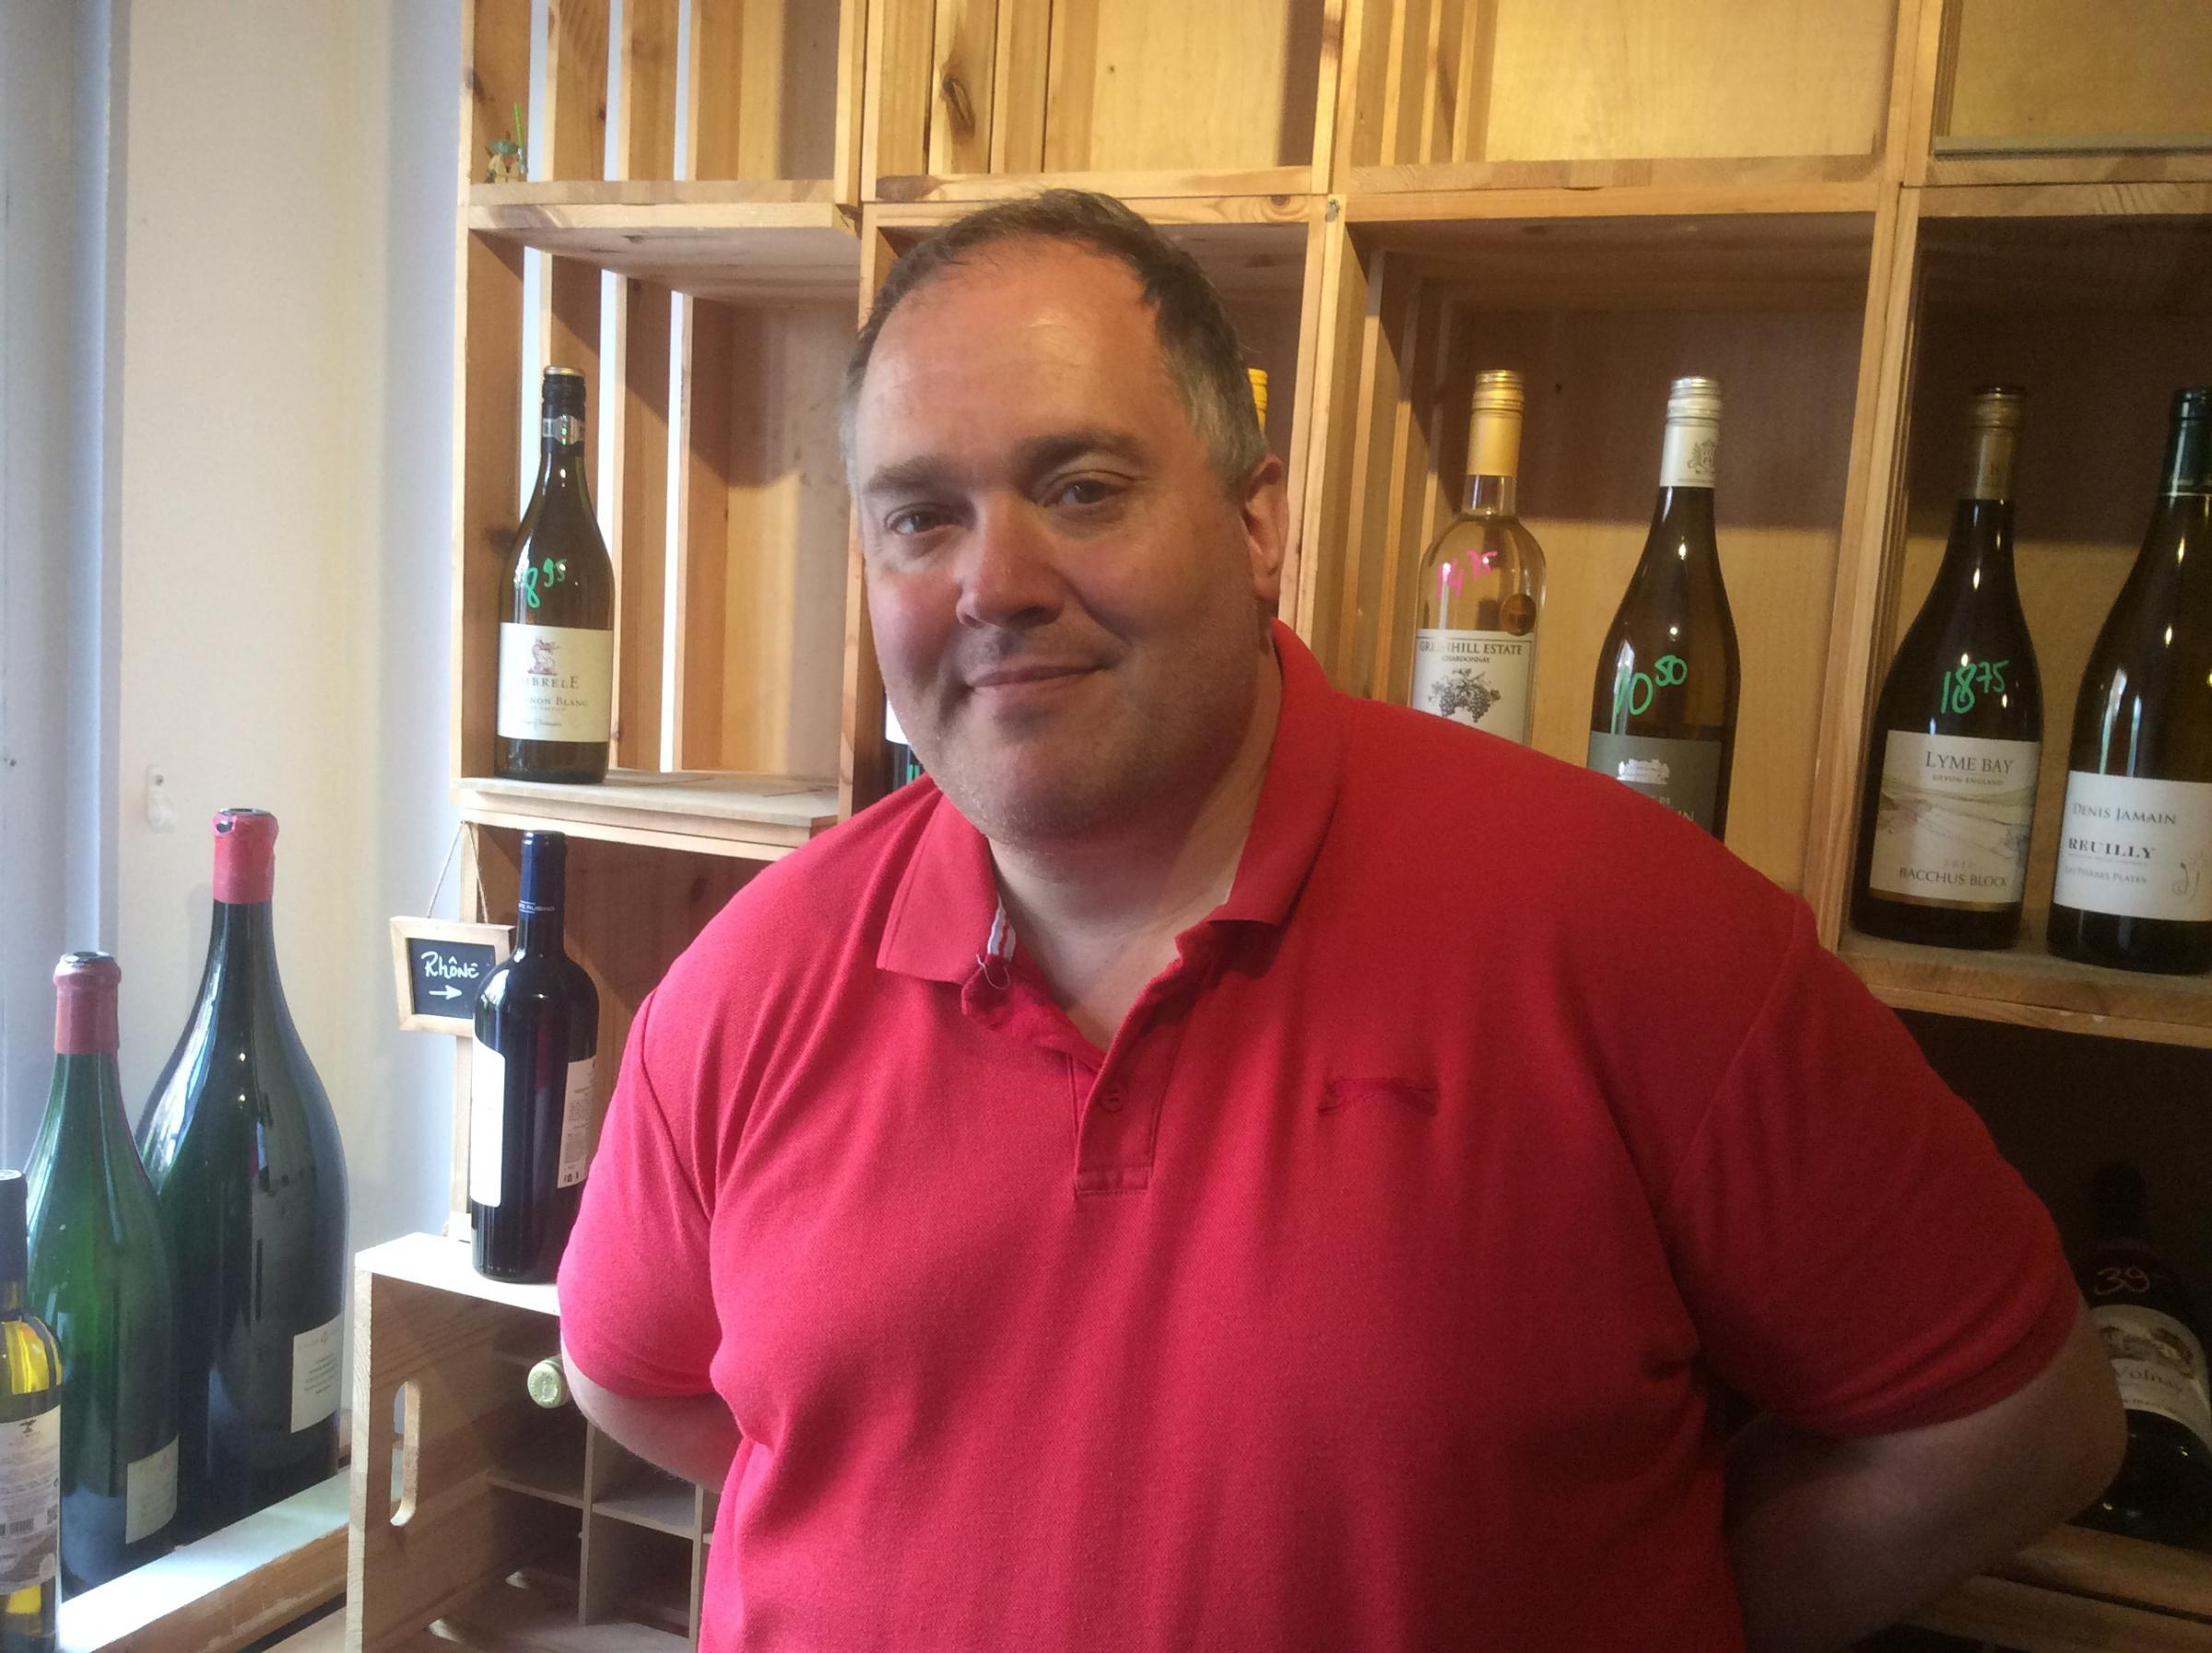 Philippe Messy who runs The Little Wine Shop in Bath Place, Taunton